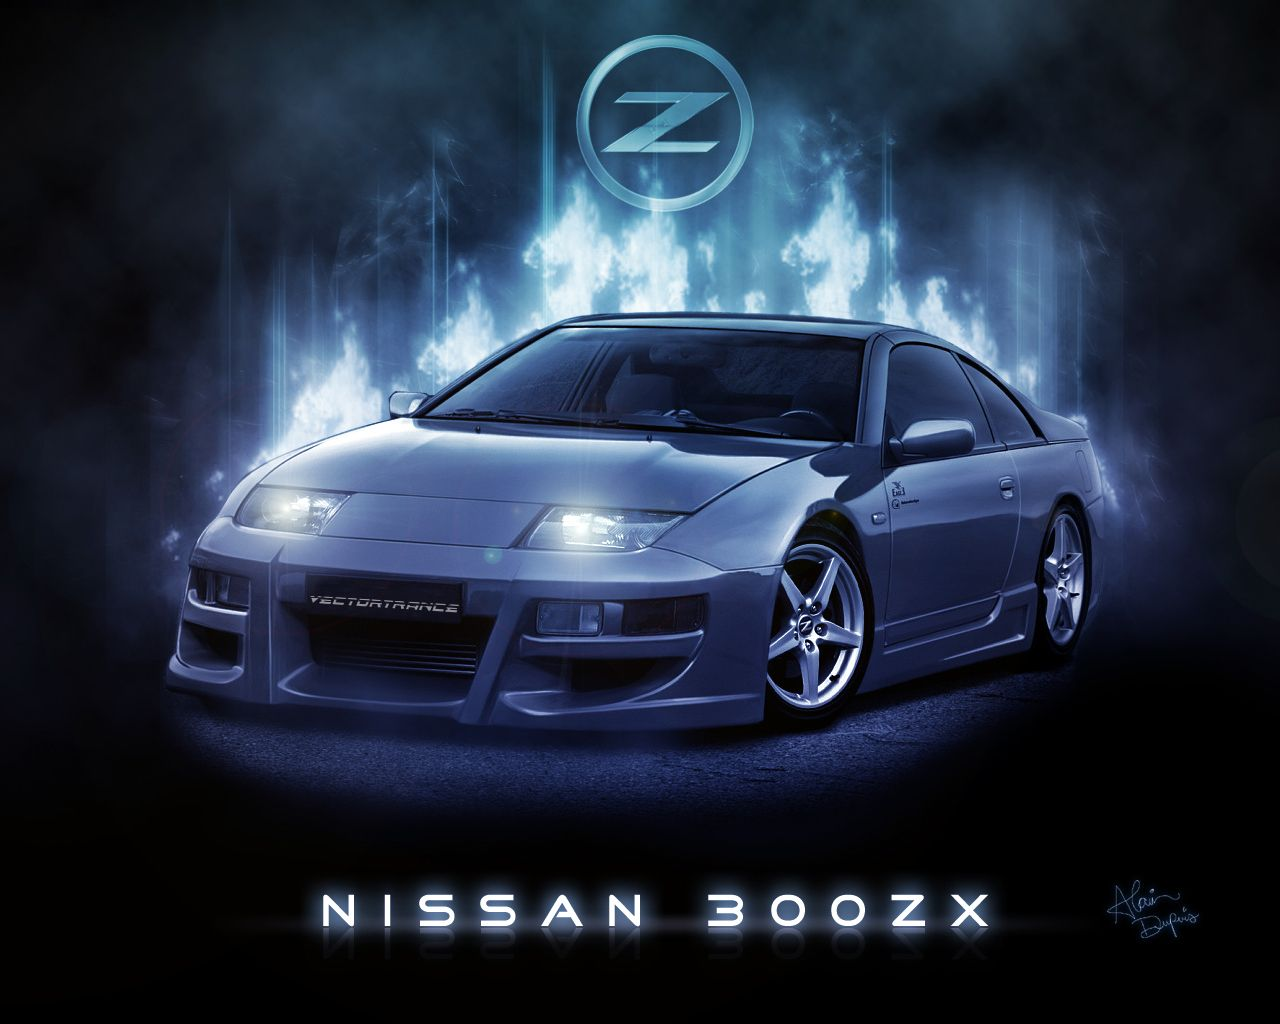 nissan 300 zx on pinterest nissan 300zx nissan 350z and anniversar. Black Bedroom Furniture Sets. Home Design Ideas